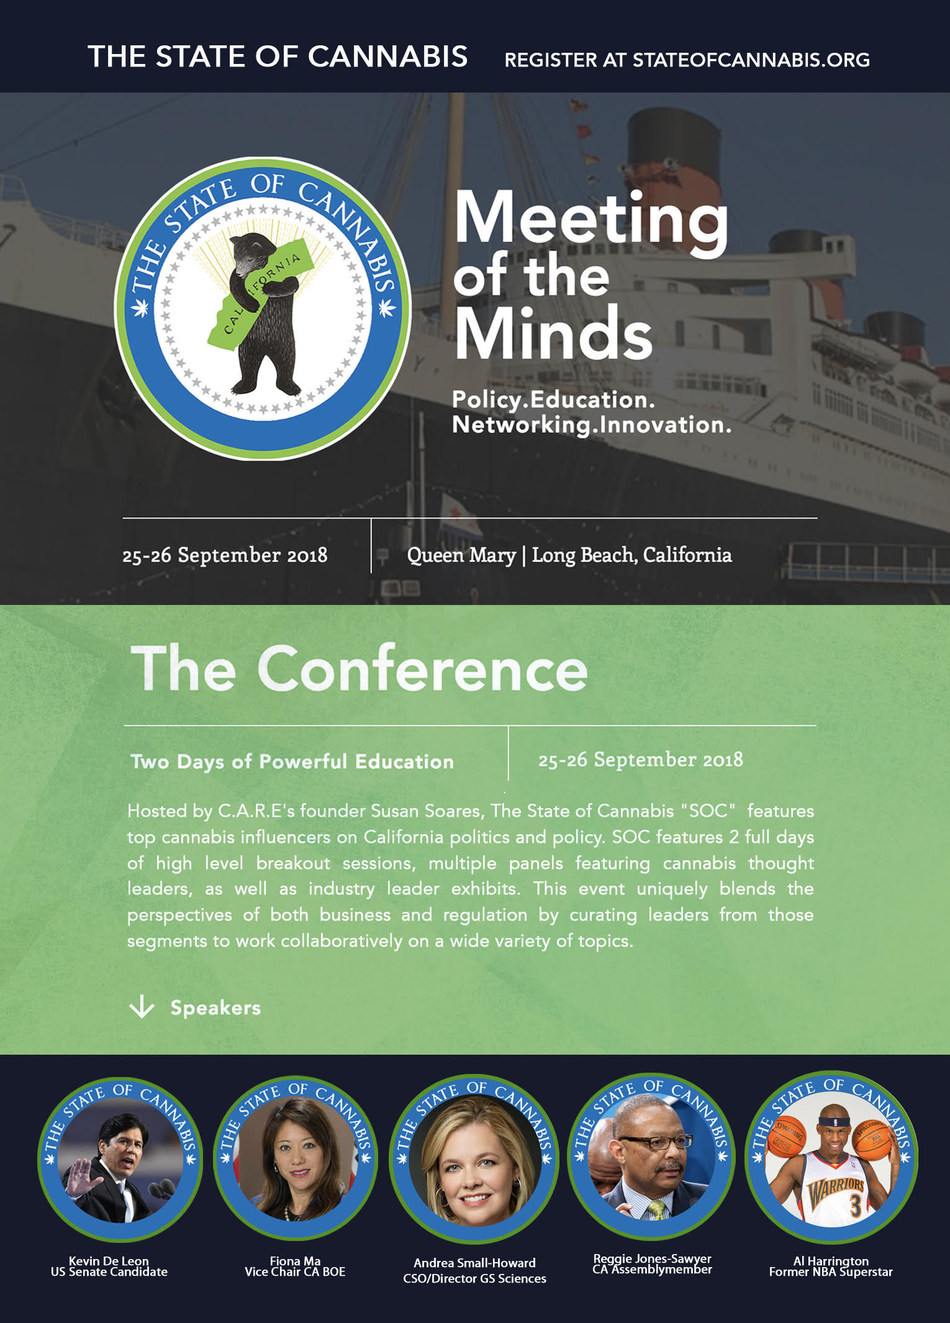 Meeting of the Minds Symposium